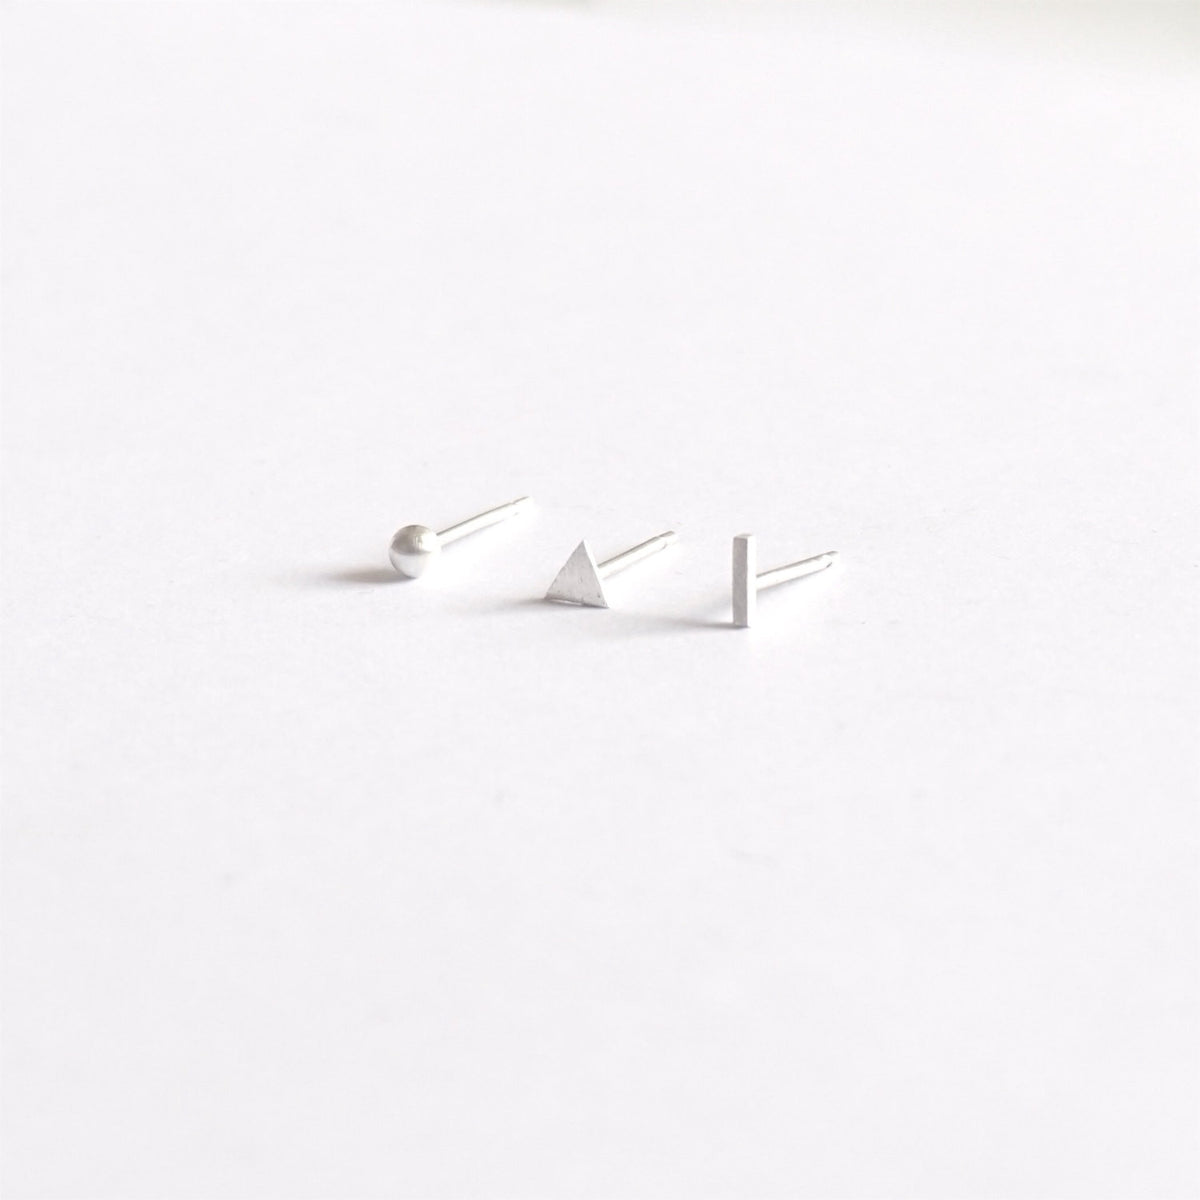 Distinctive and Well Designed Mismatched Stud Earrings - 0219 - Virginia Wynne Designs